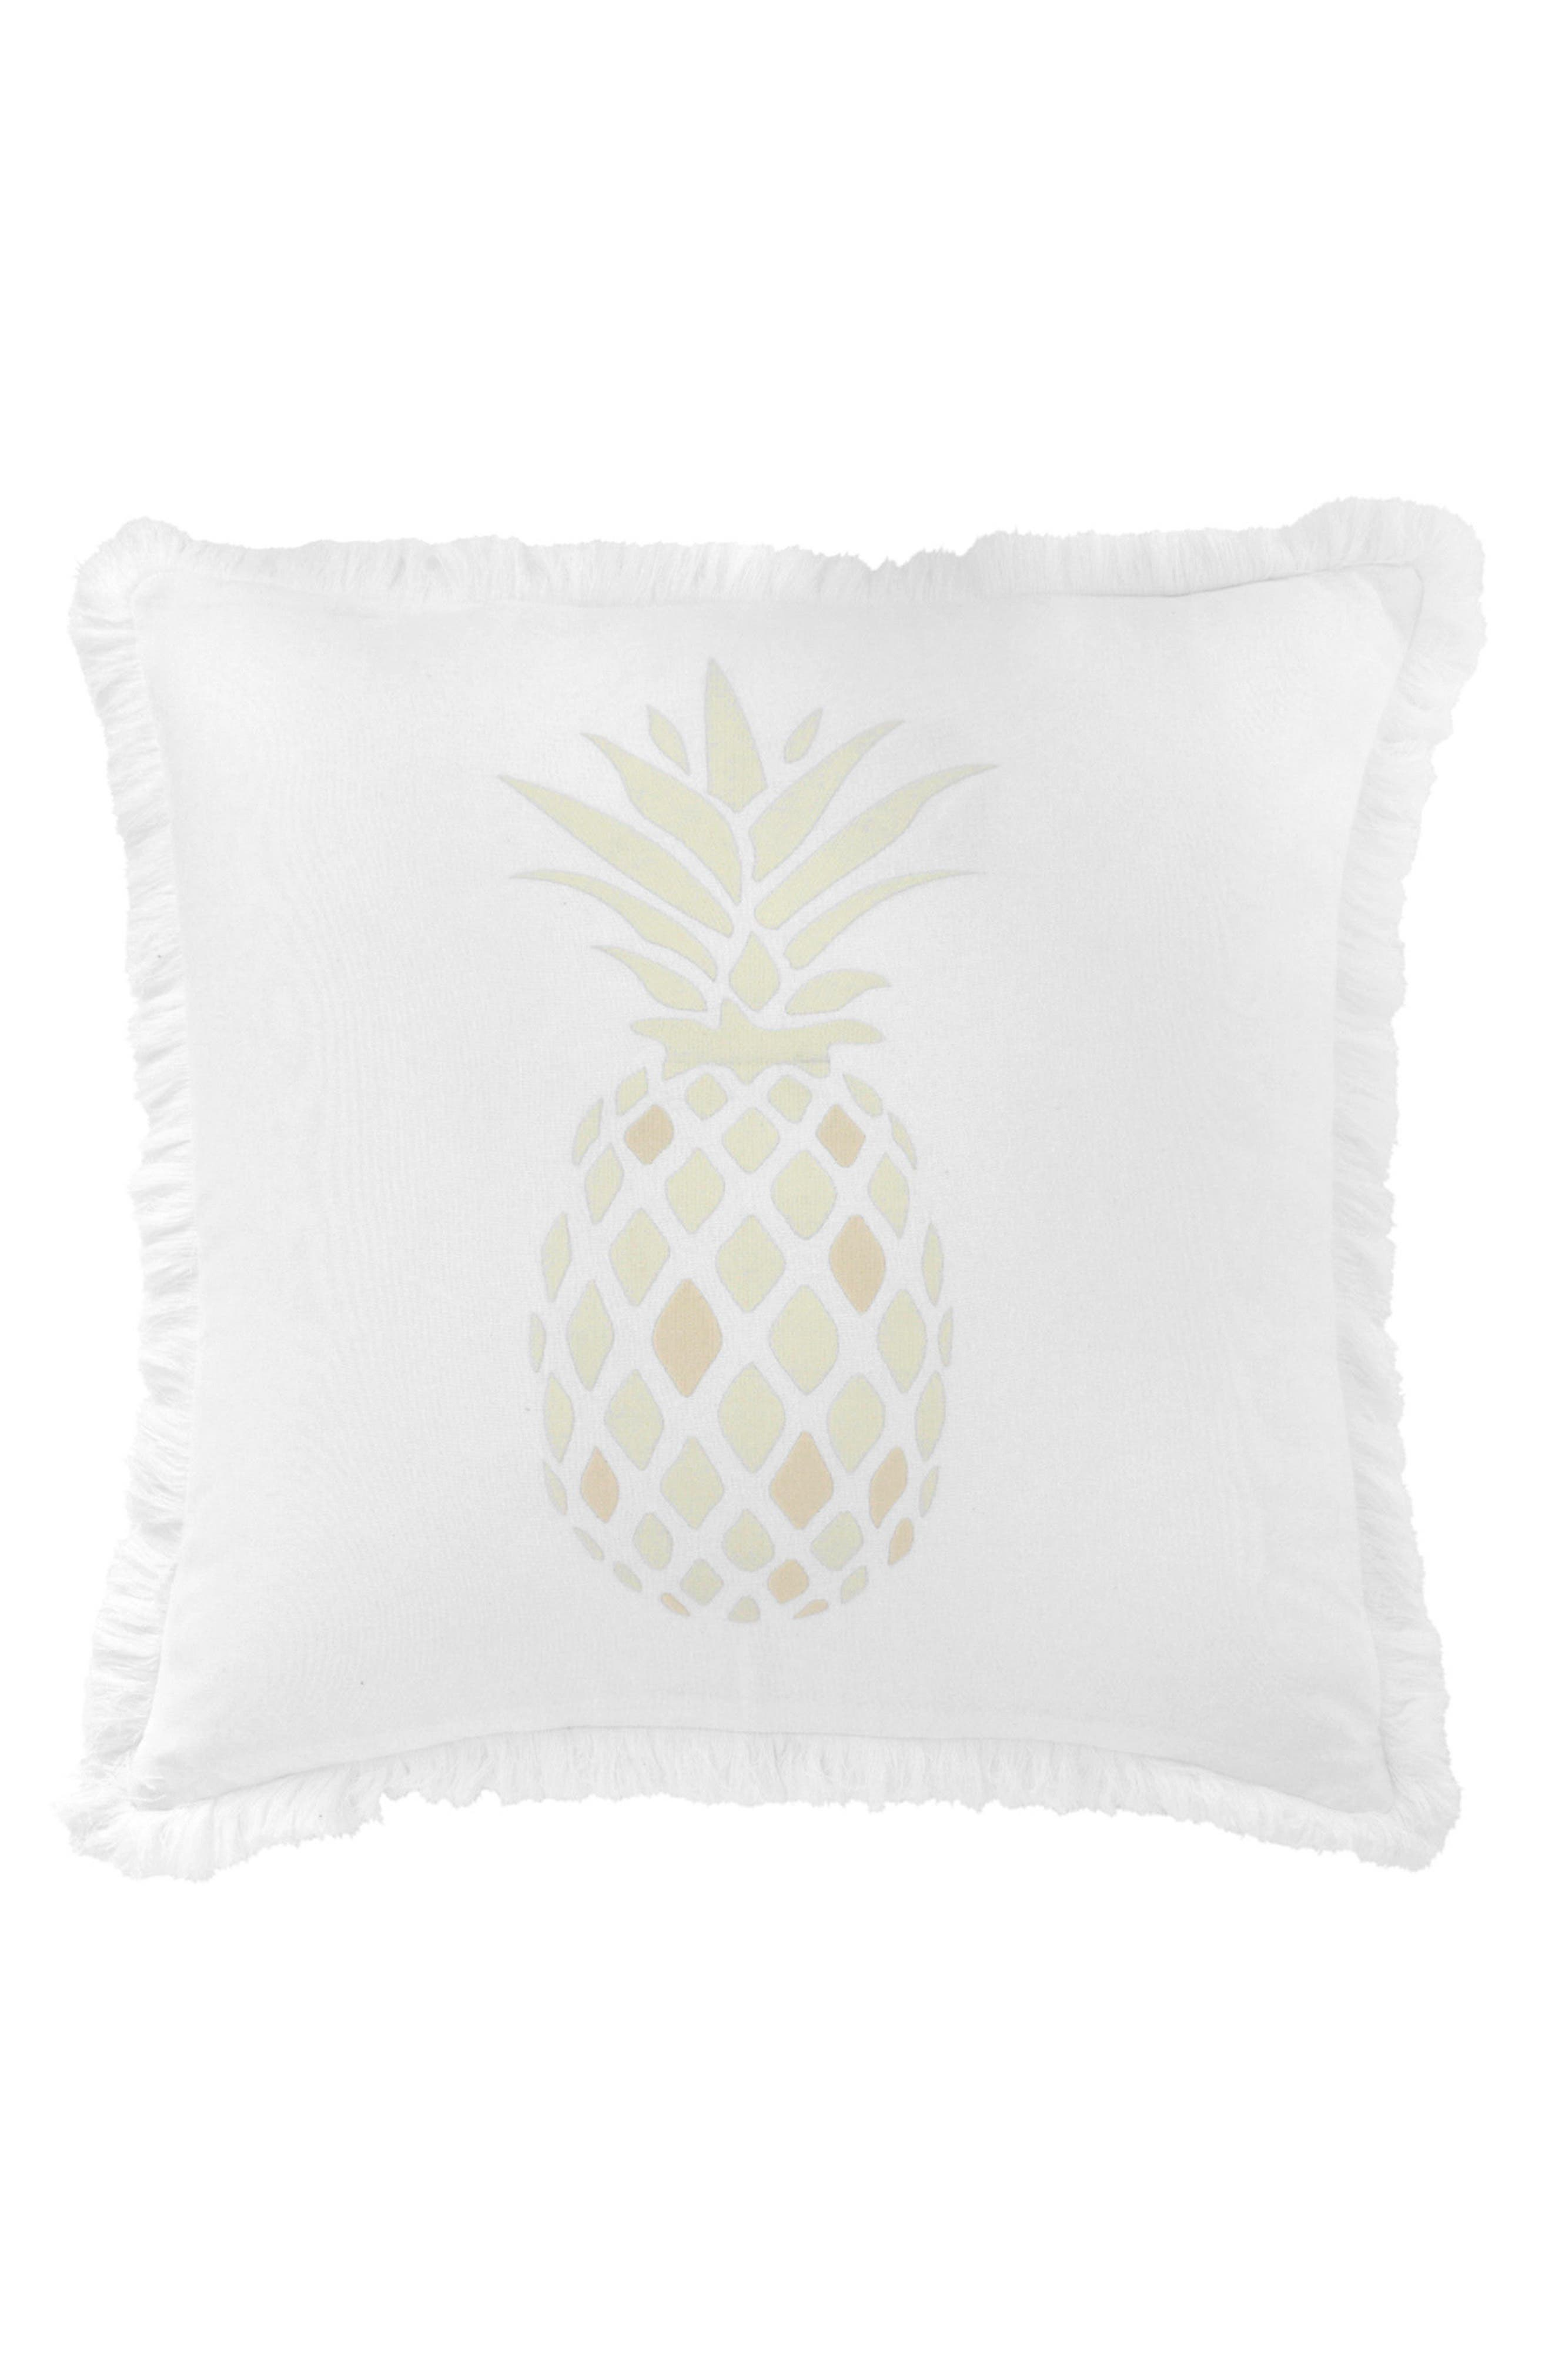 Southern Hospitality Pineapple Accent Pillow,                         Main,                         color, White